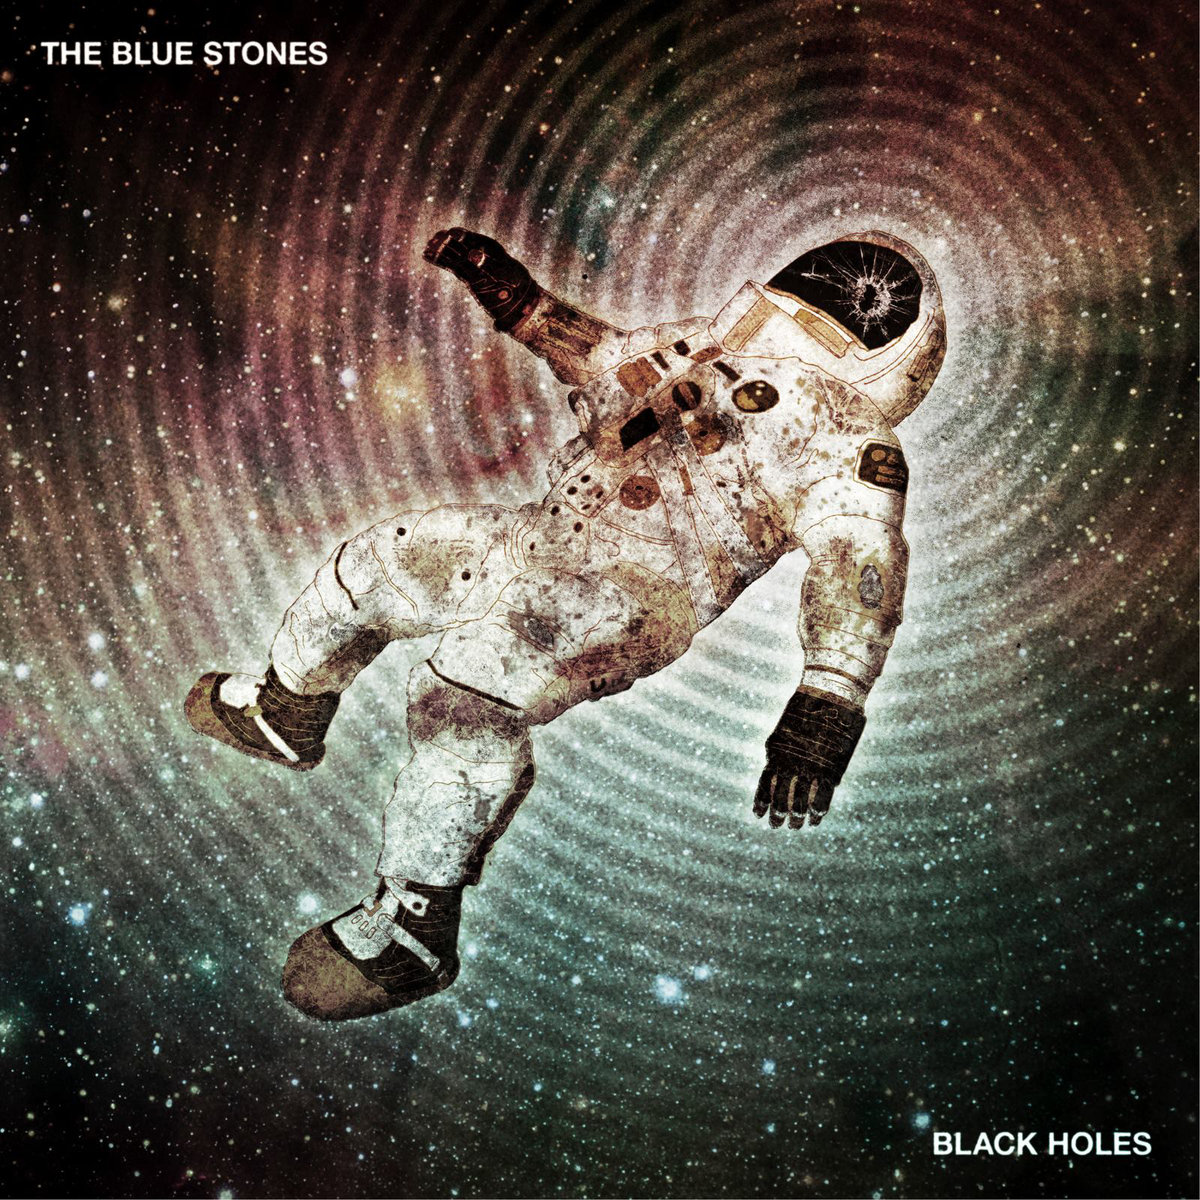 The Blue Stones - Little Brother @ 'BLACK HOLES' album (alternative, blues)